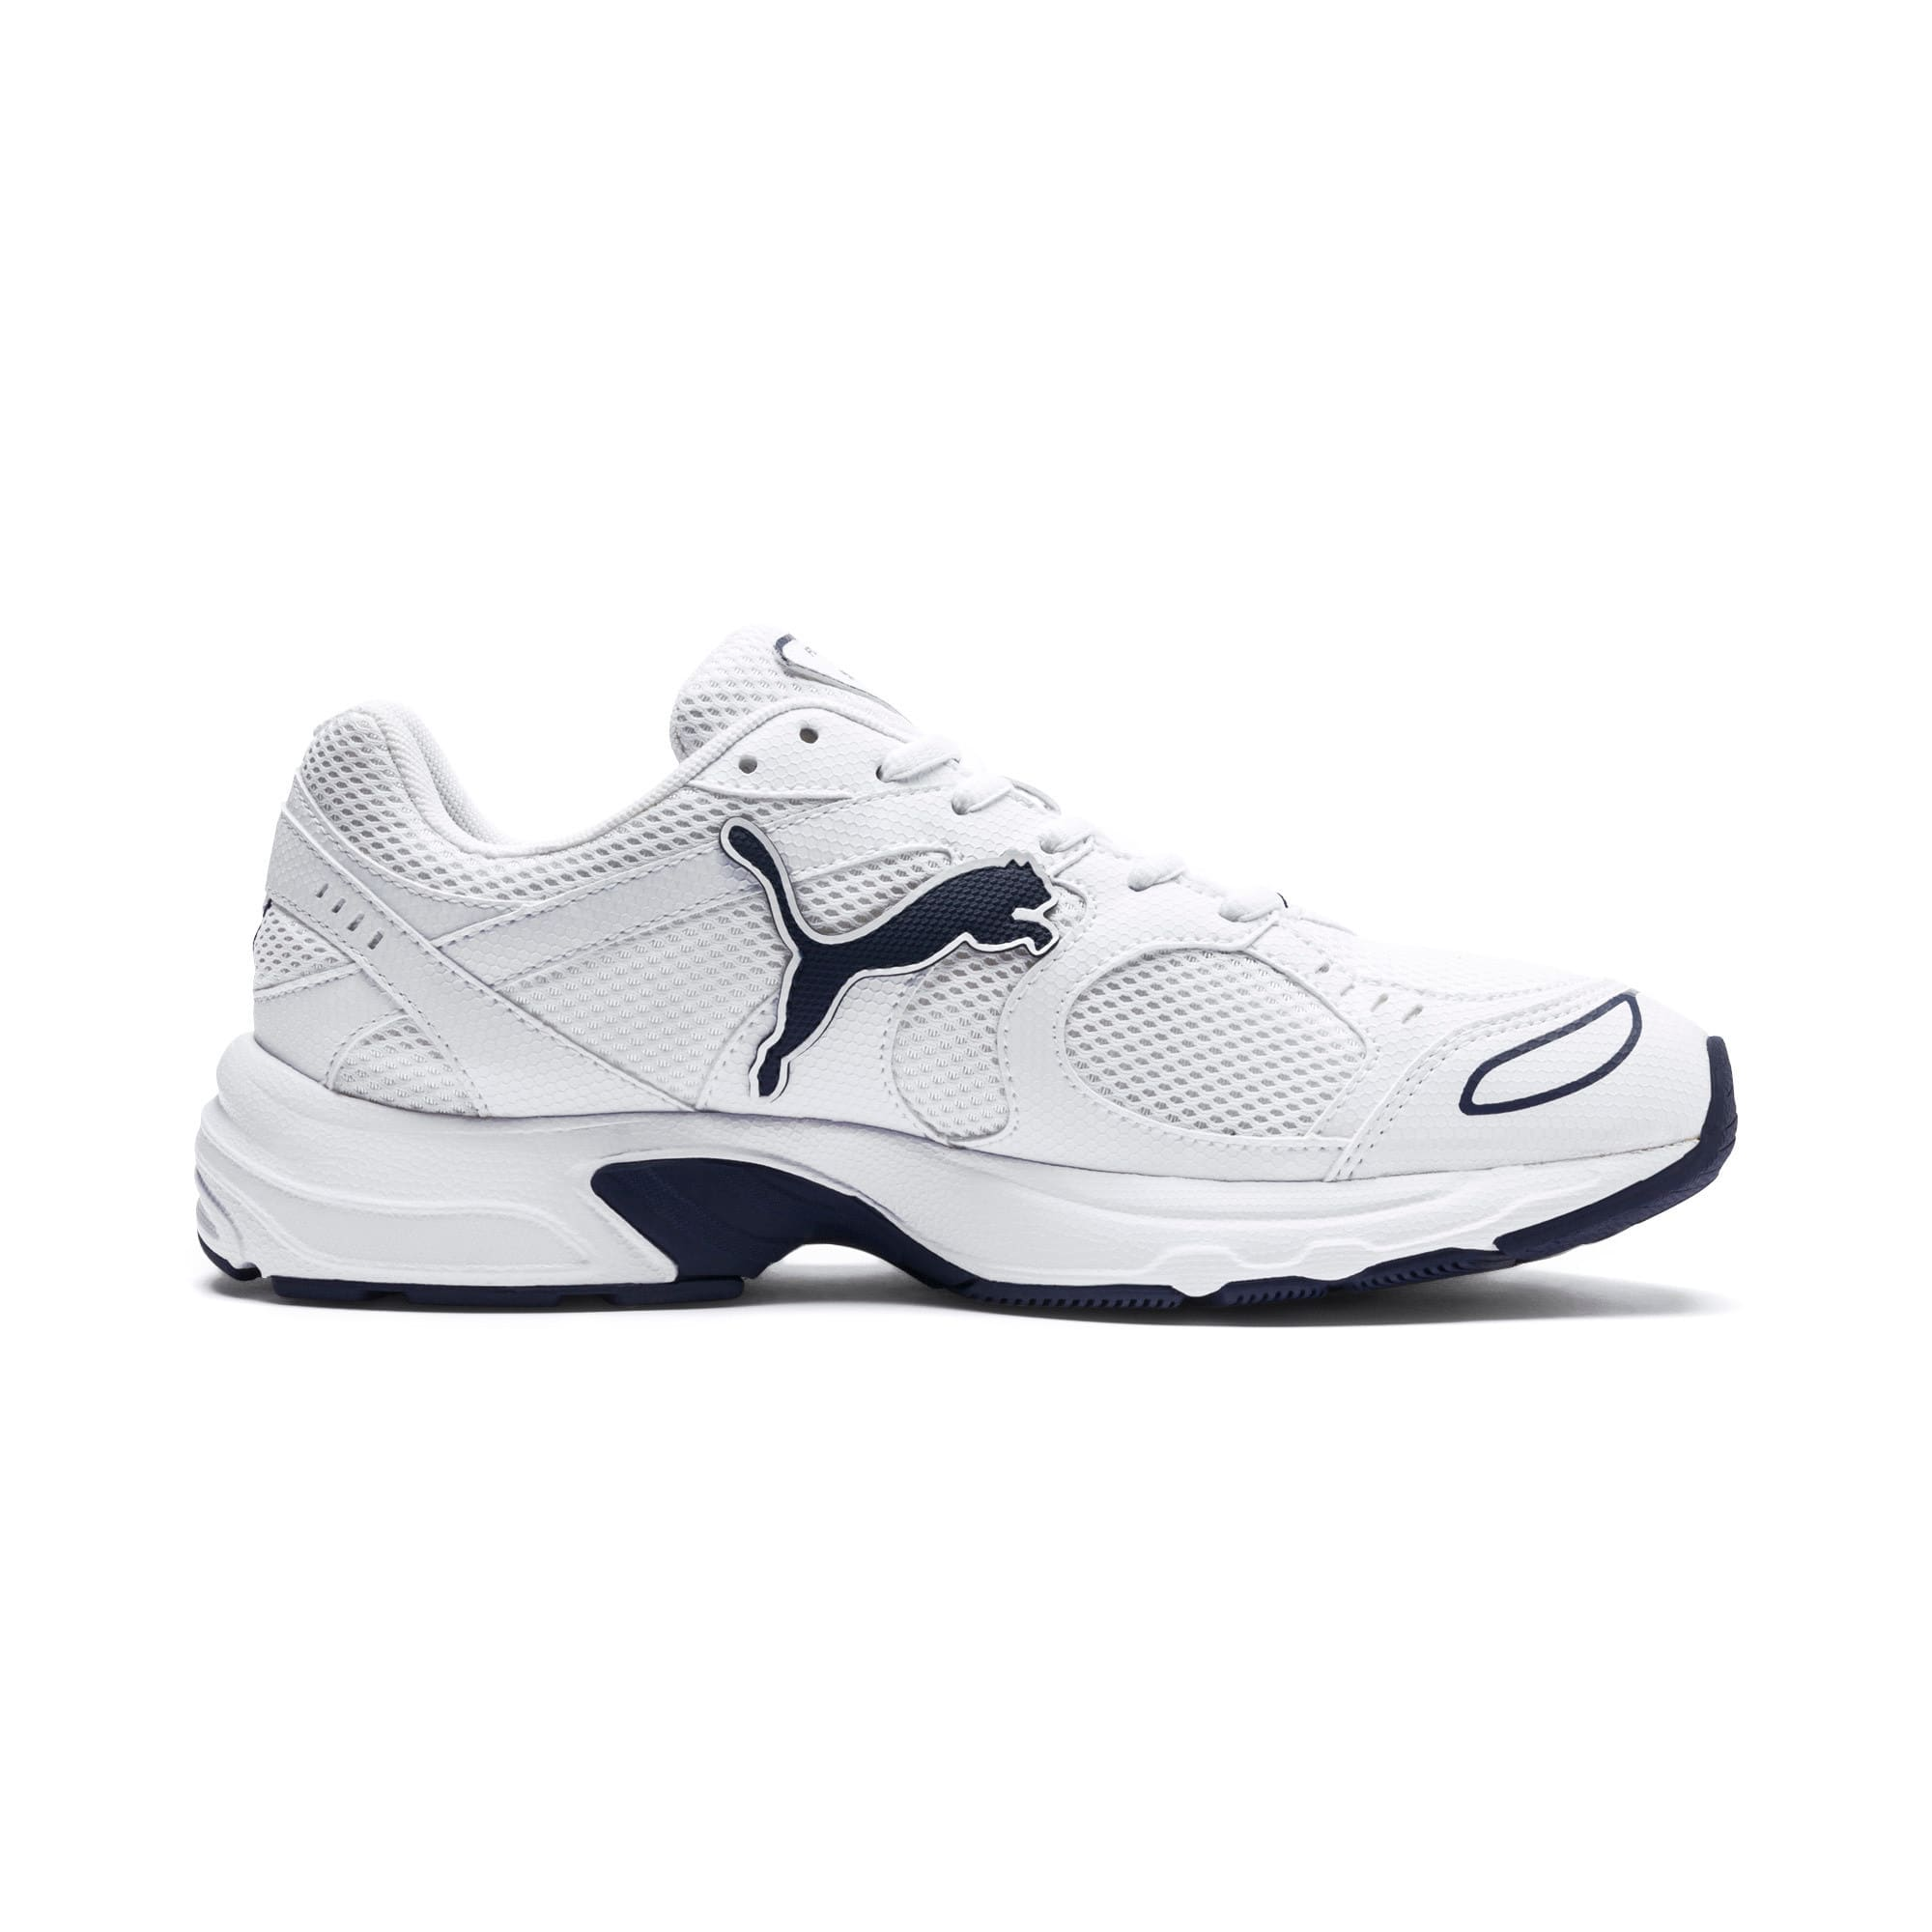 Thumbnail 5 of Axis Trainers, Puma White-Peacoat, medium-IND